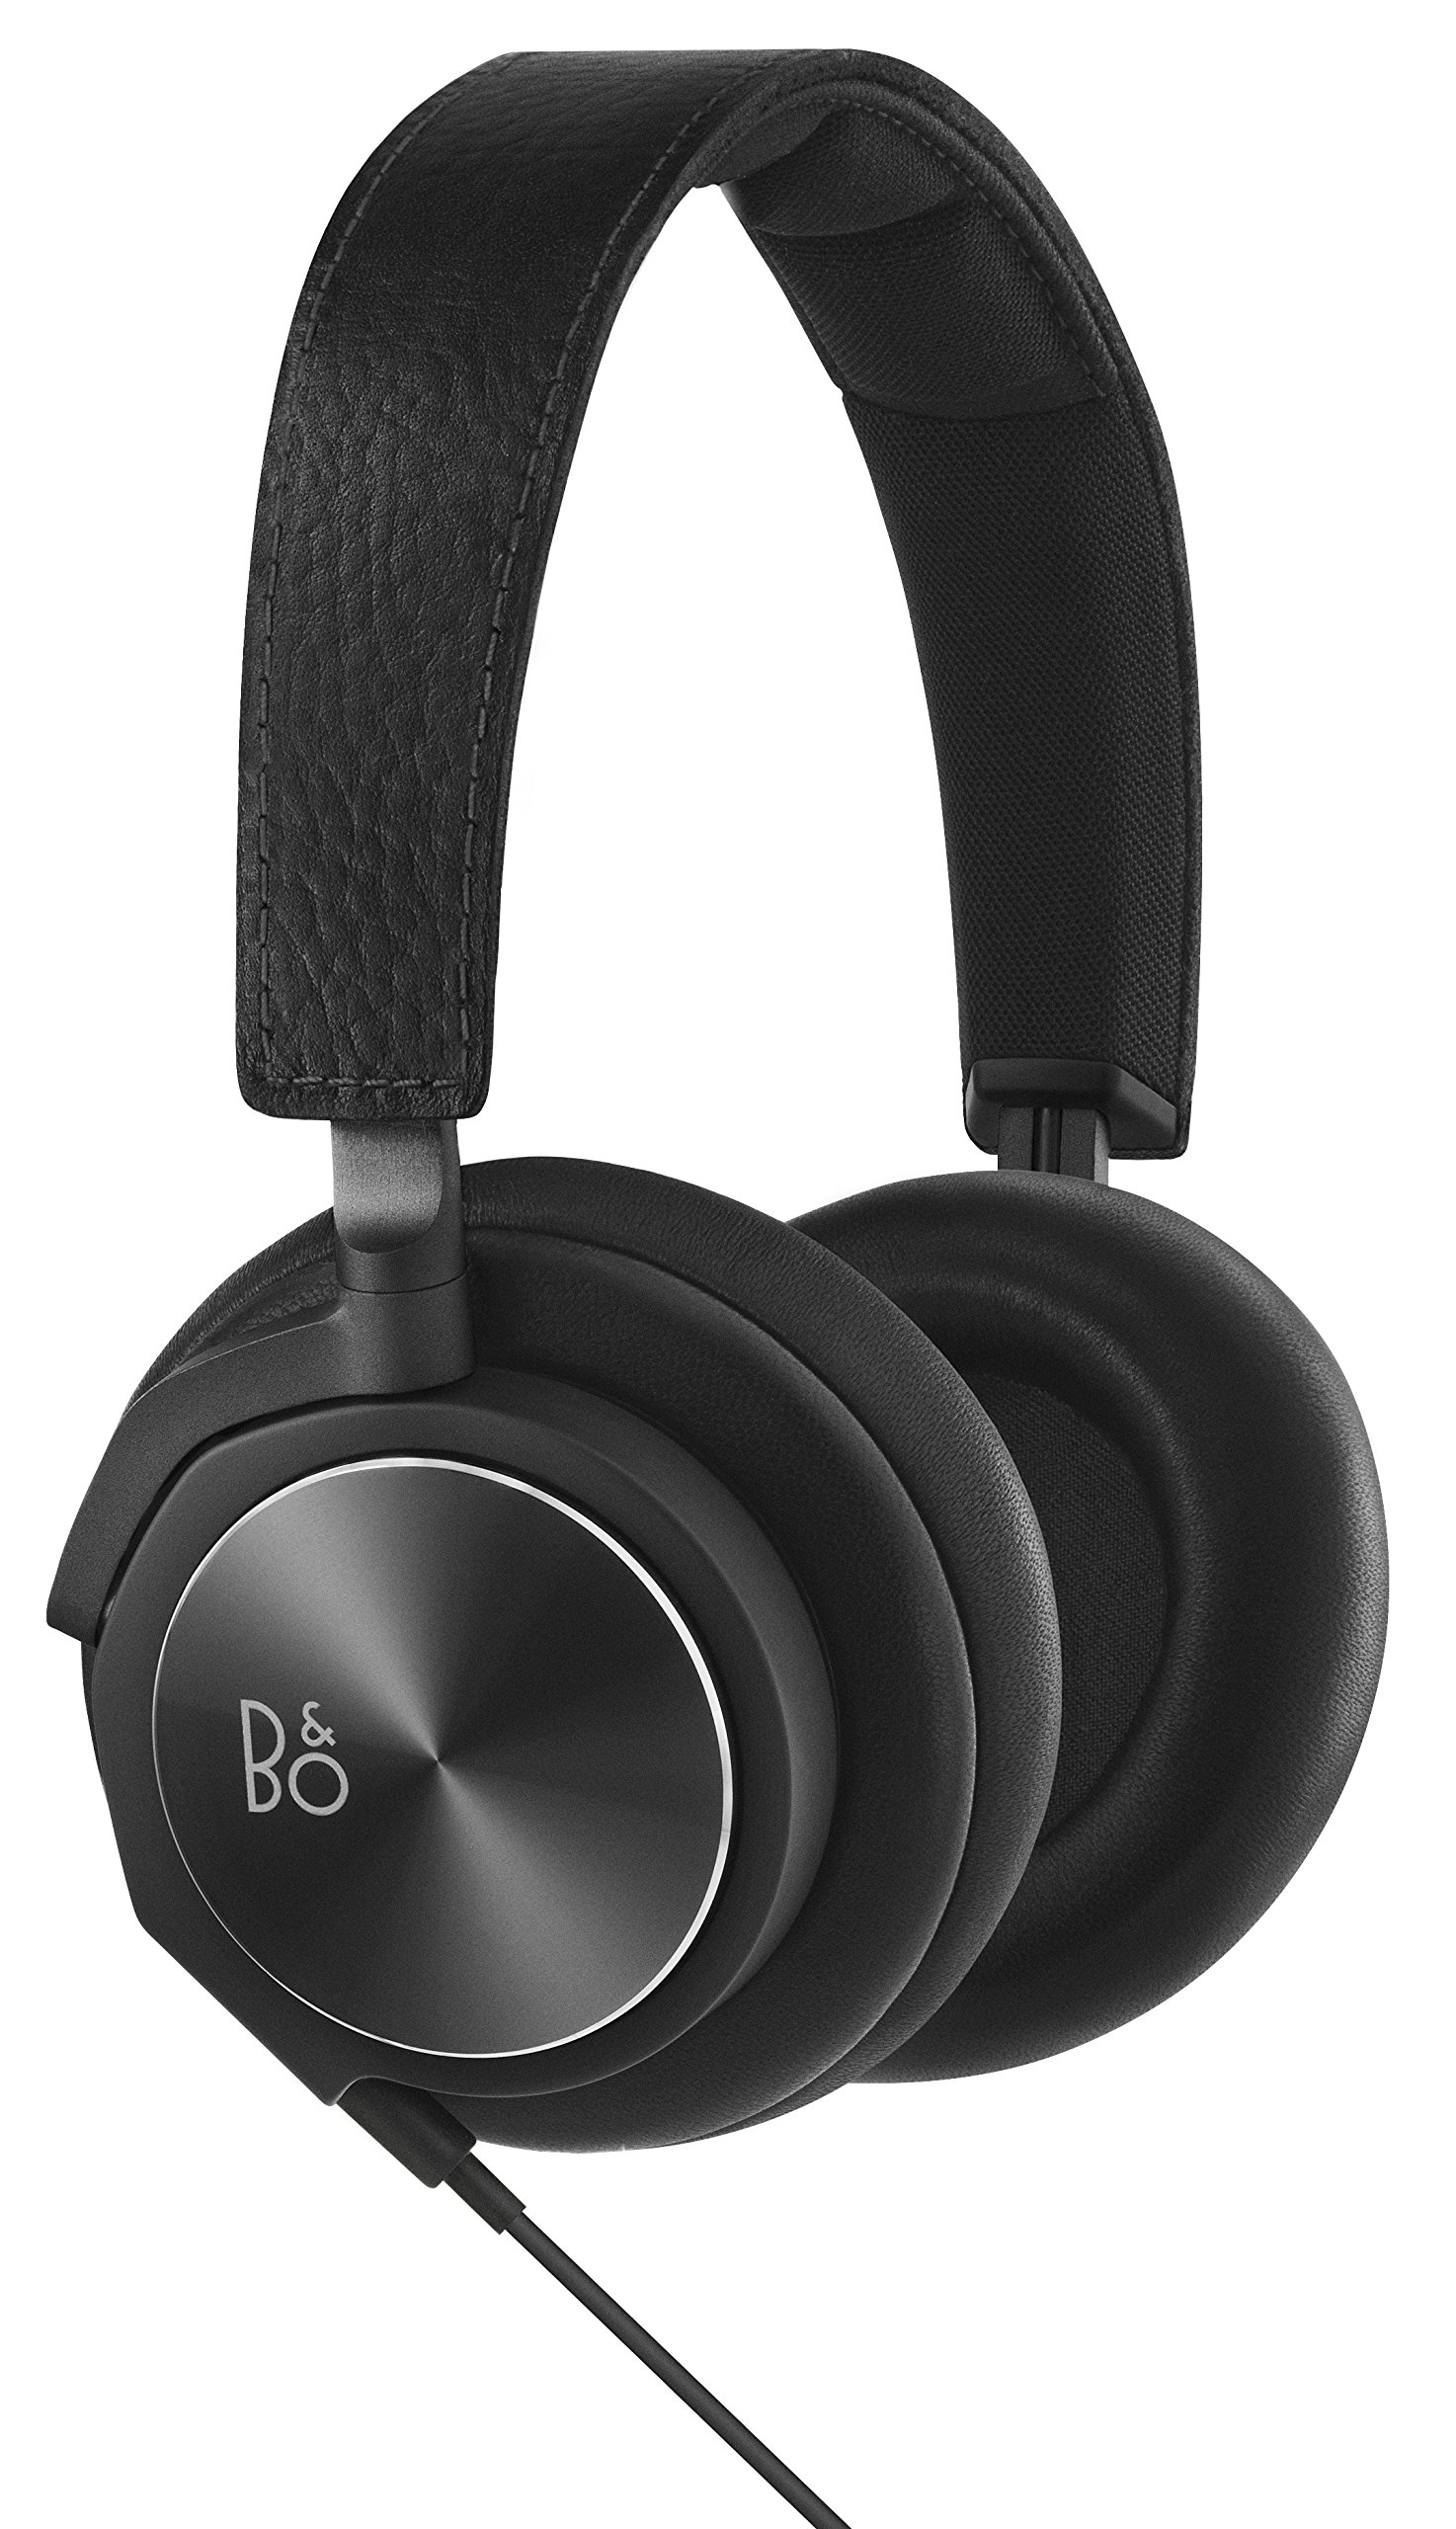 B&O PLAY by Bang & Olufsen Beoplay H6 Over-Ear Wired Headphone, 2nd Generation (Black) by B&O PLAY by Bang & Olufsen